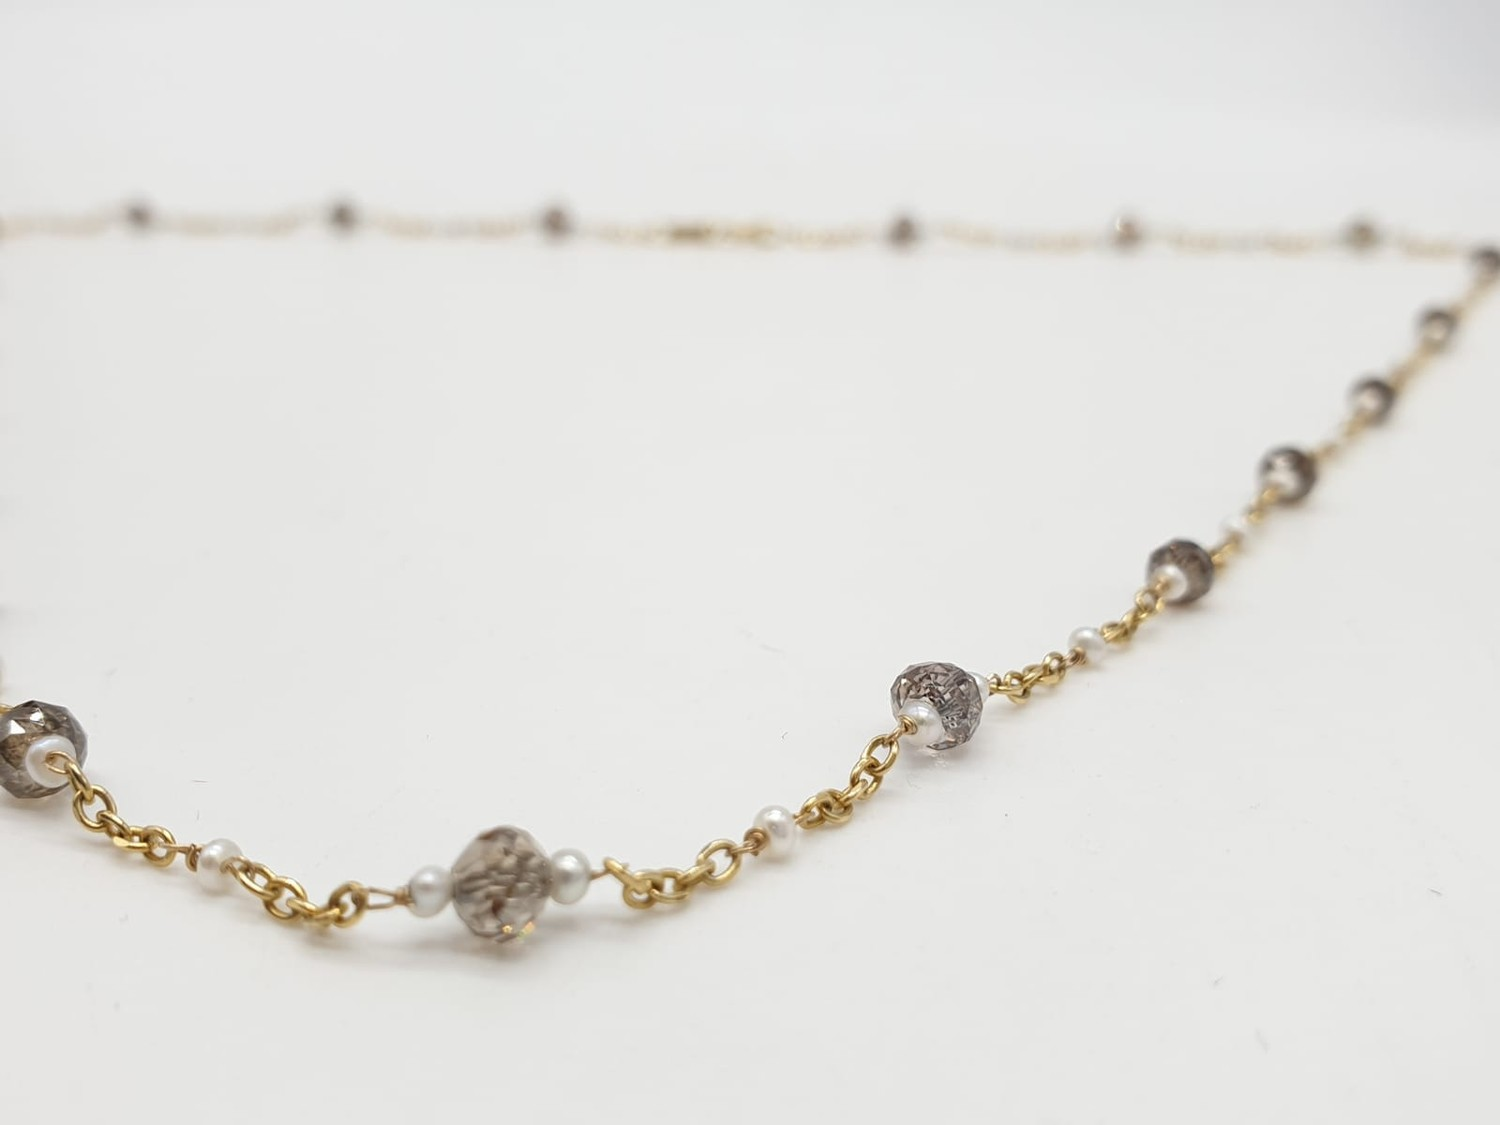 14ct gold brown diamond and pearl necklace with matching bracelet, total weight 5.6g and over 9ct - Image 5 of 6